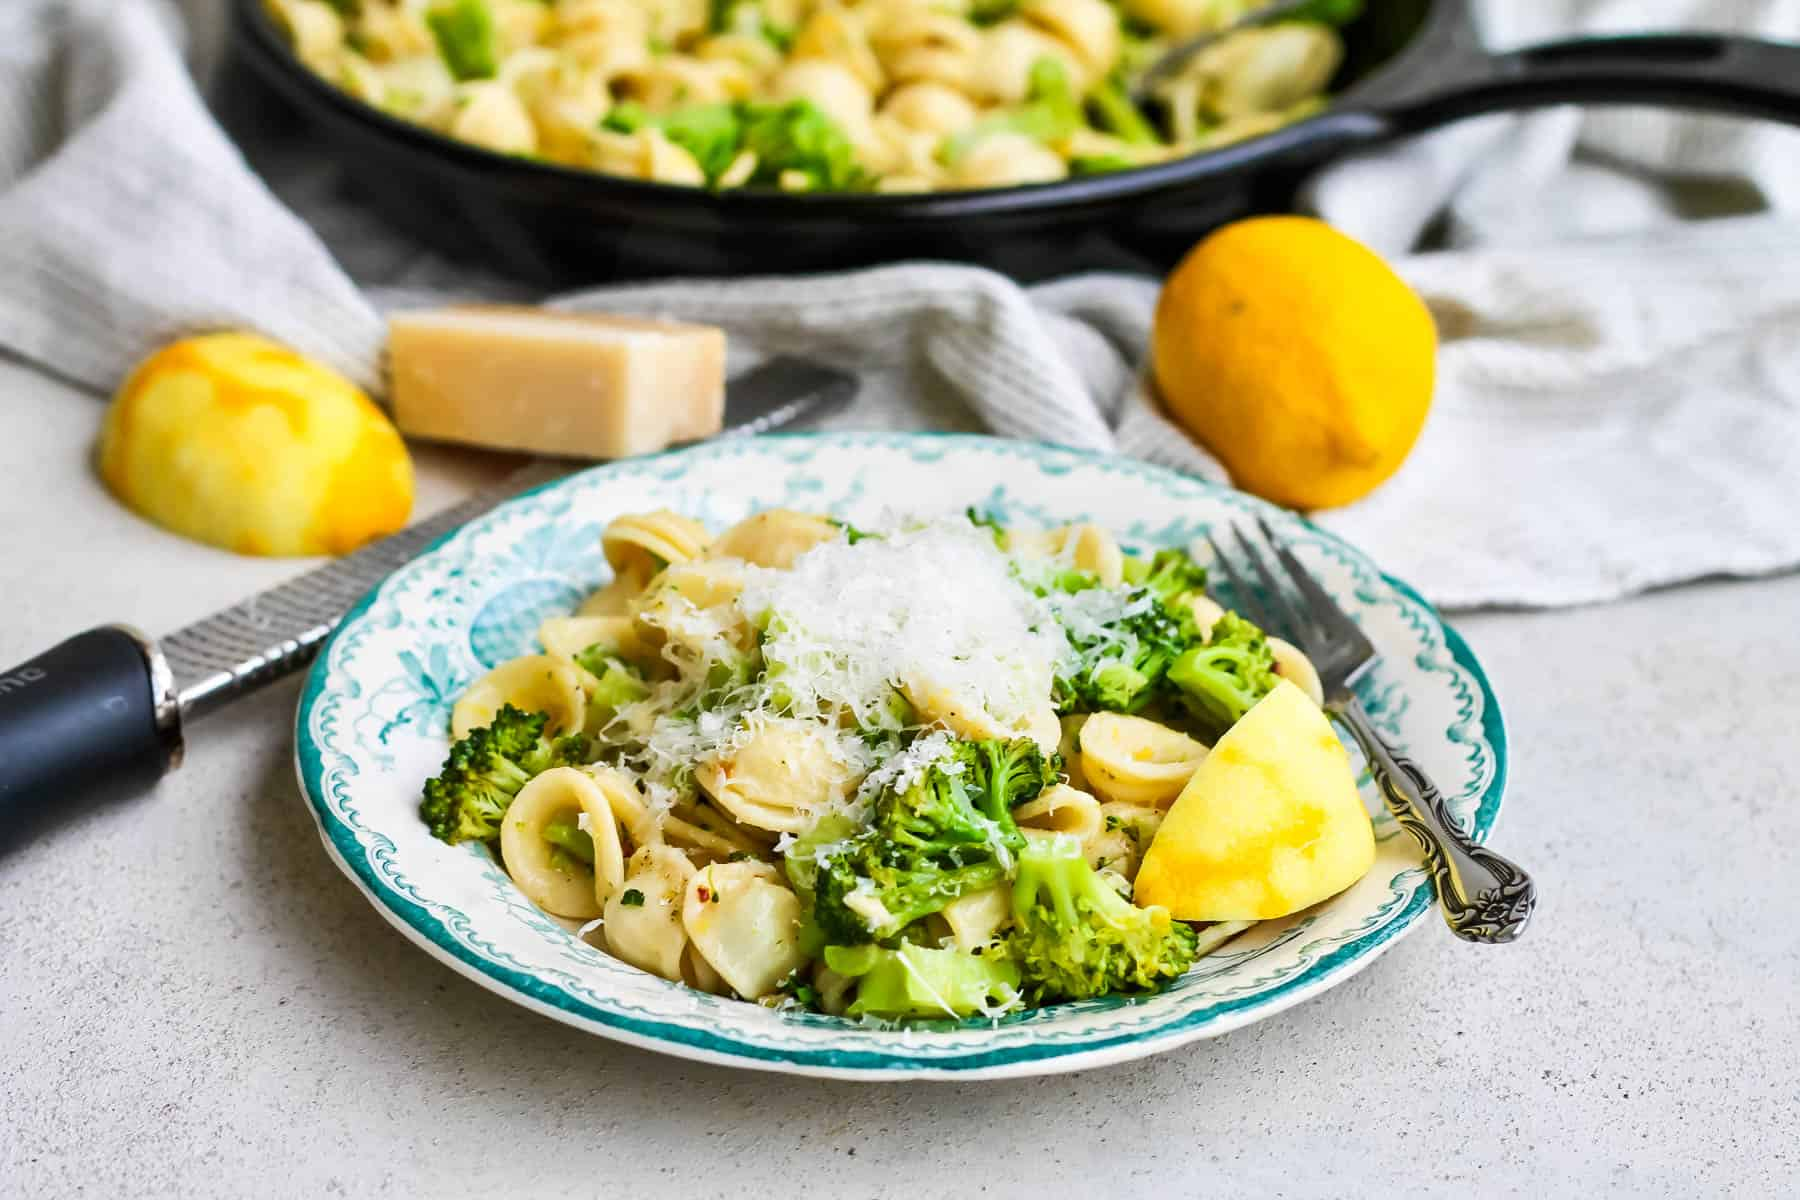 a blue patterned plate with broccoli orecchiette